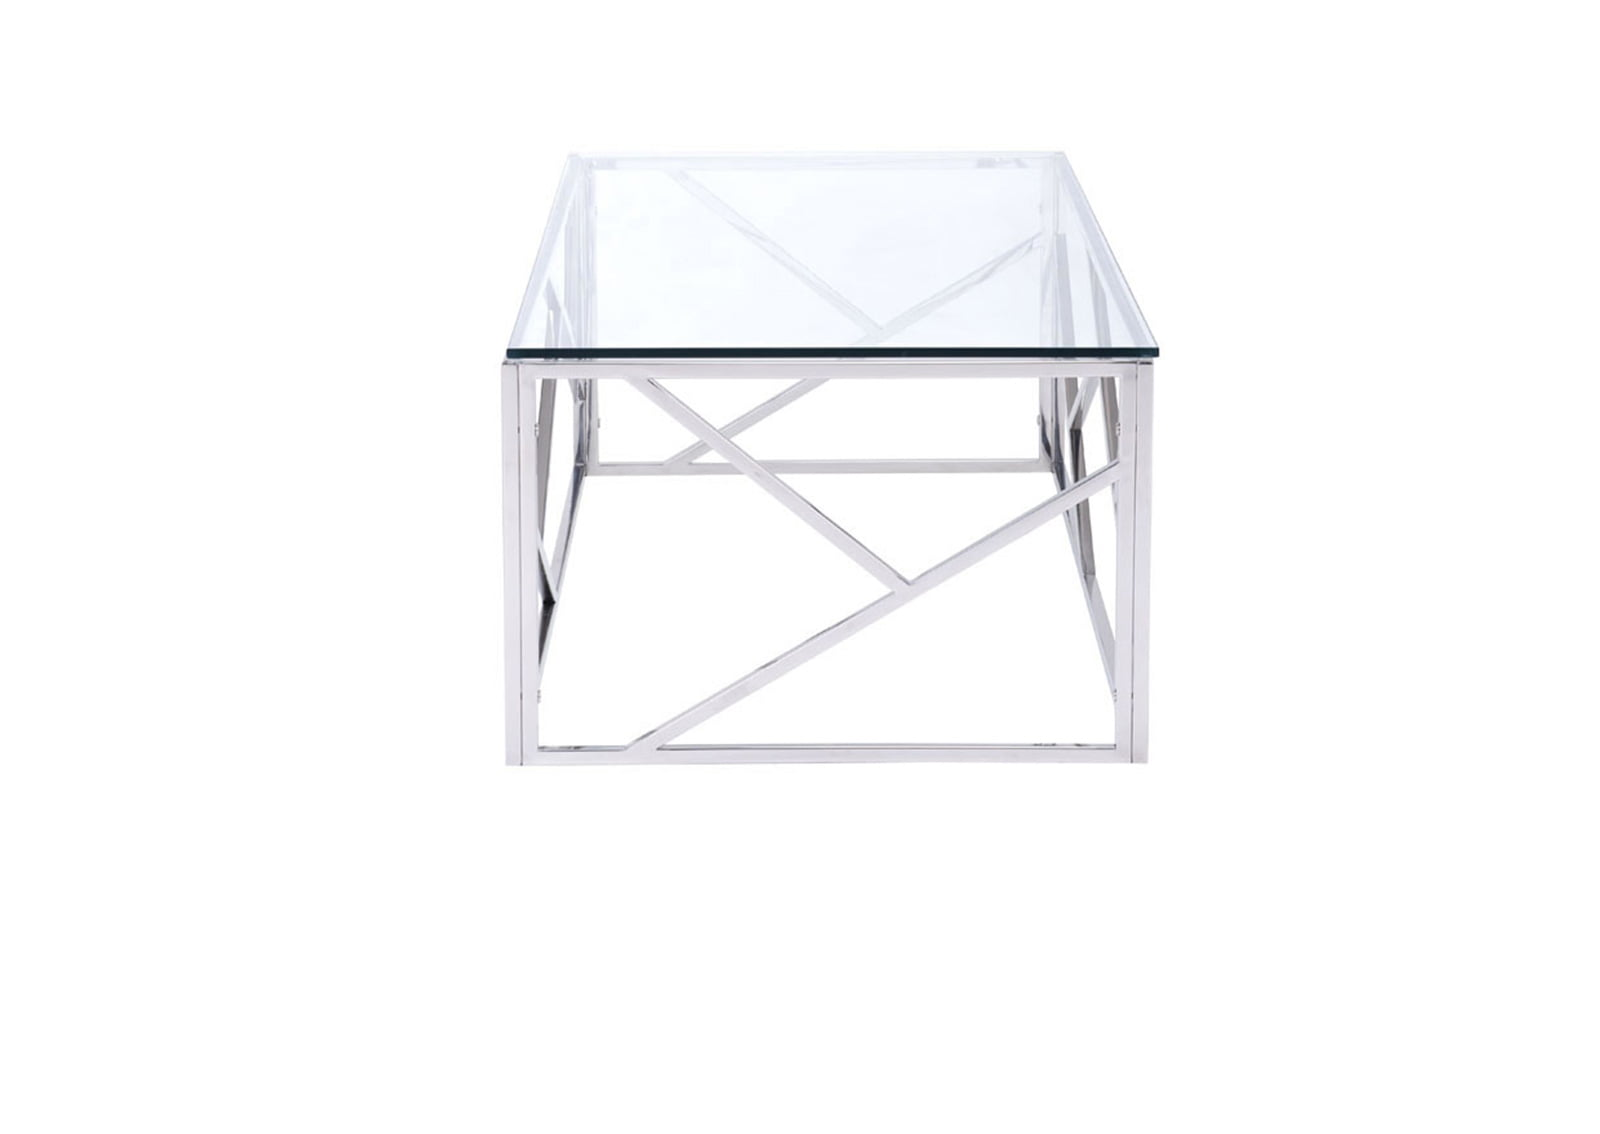 Cage Coffee Table Stainless Steel